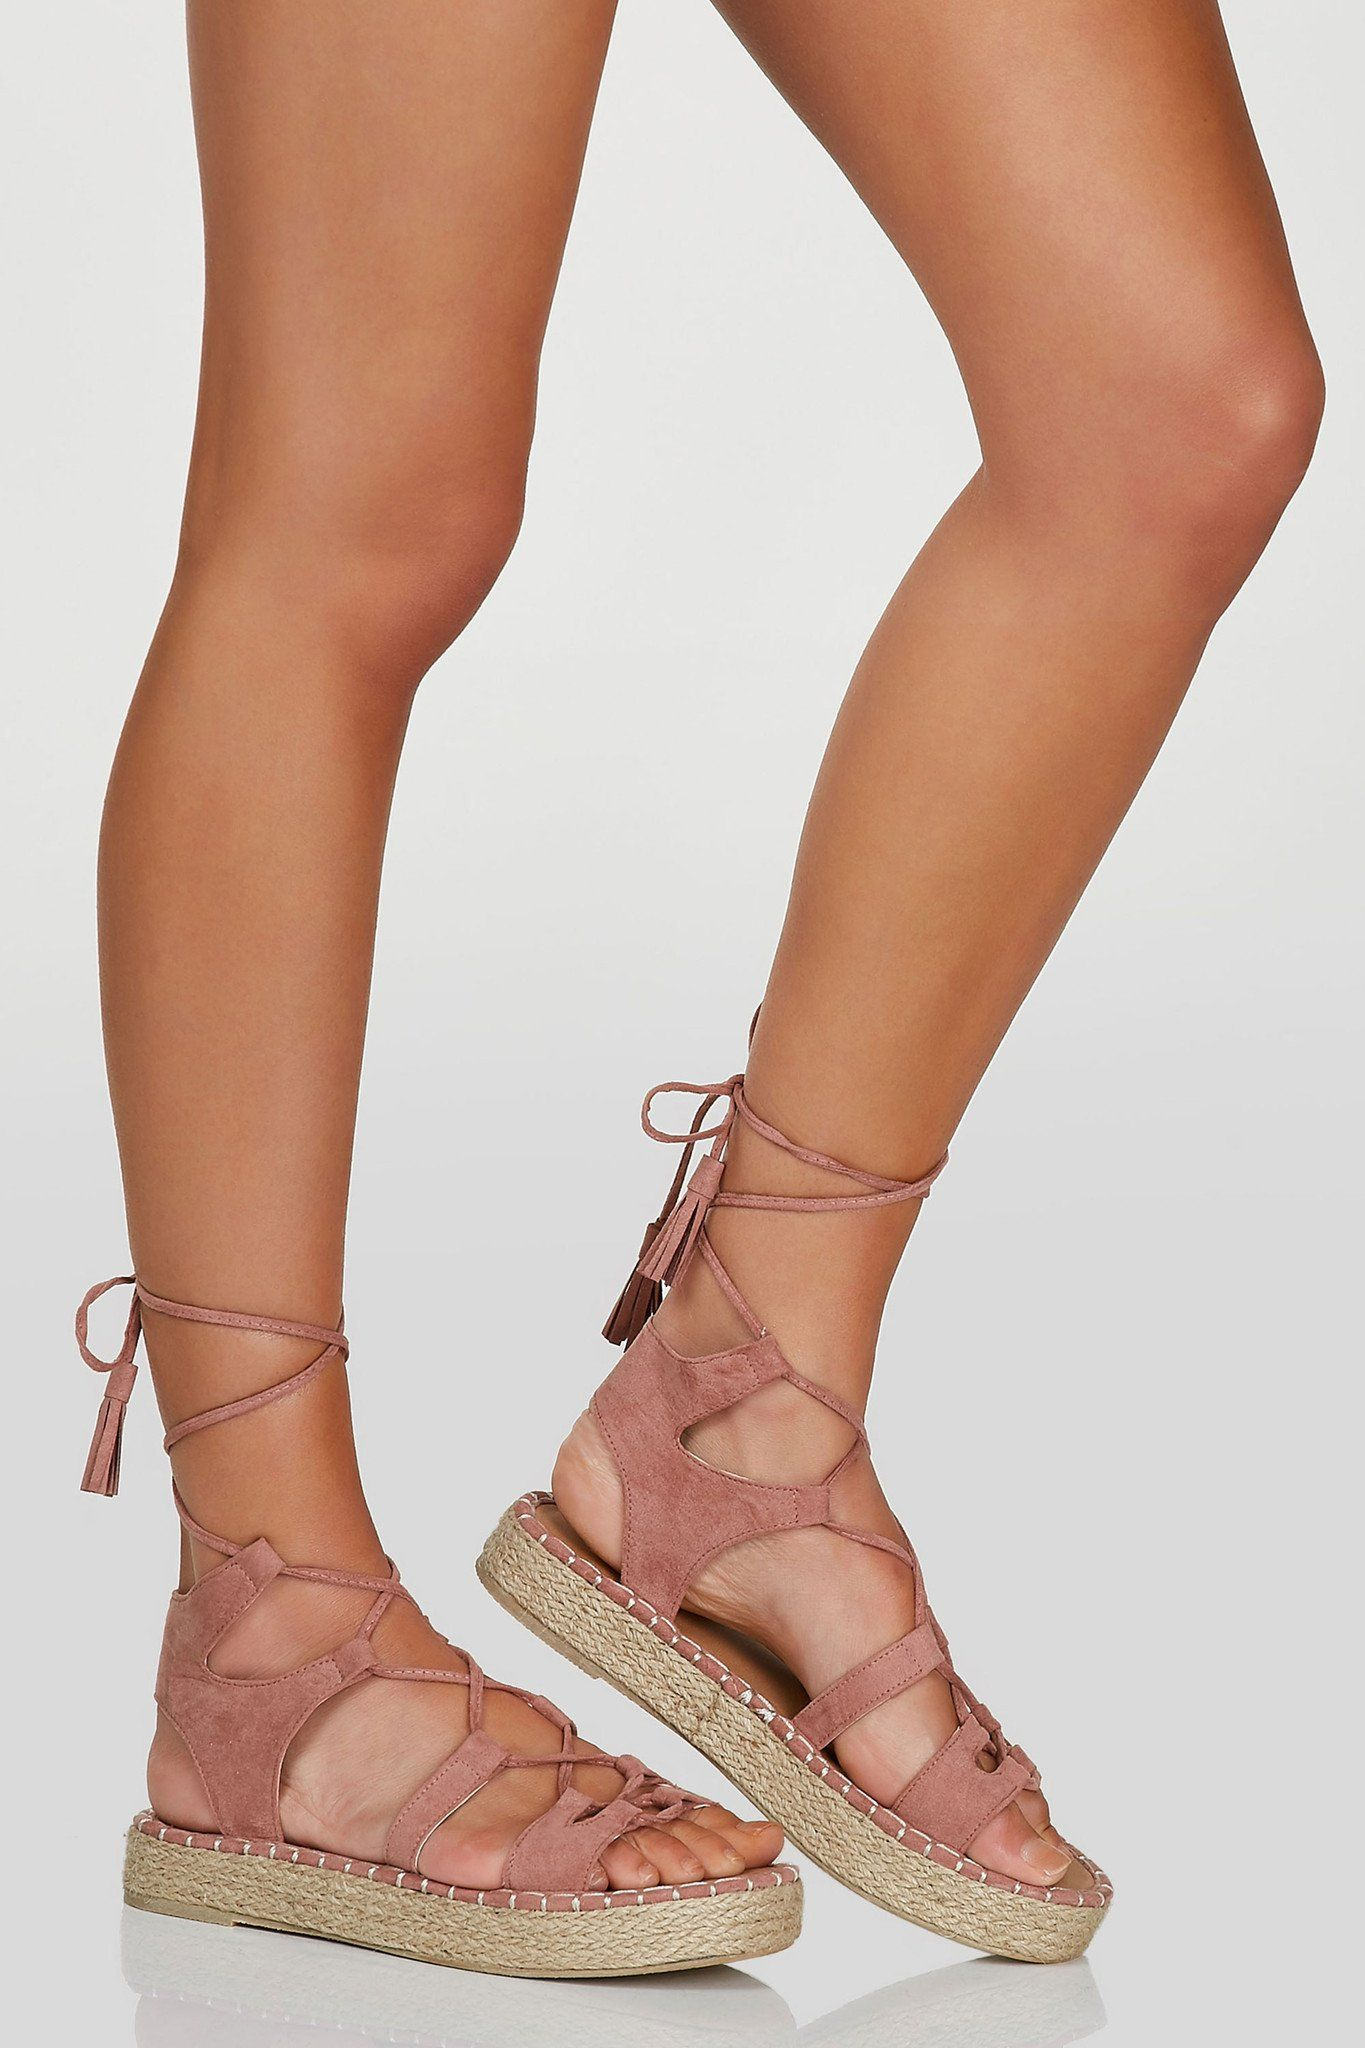 An Adorable Pair Of Espadrille Sandals With Gladiator Lace Up